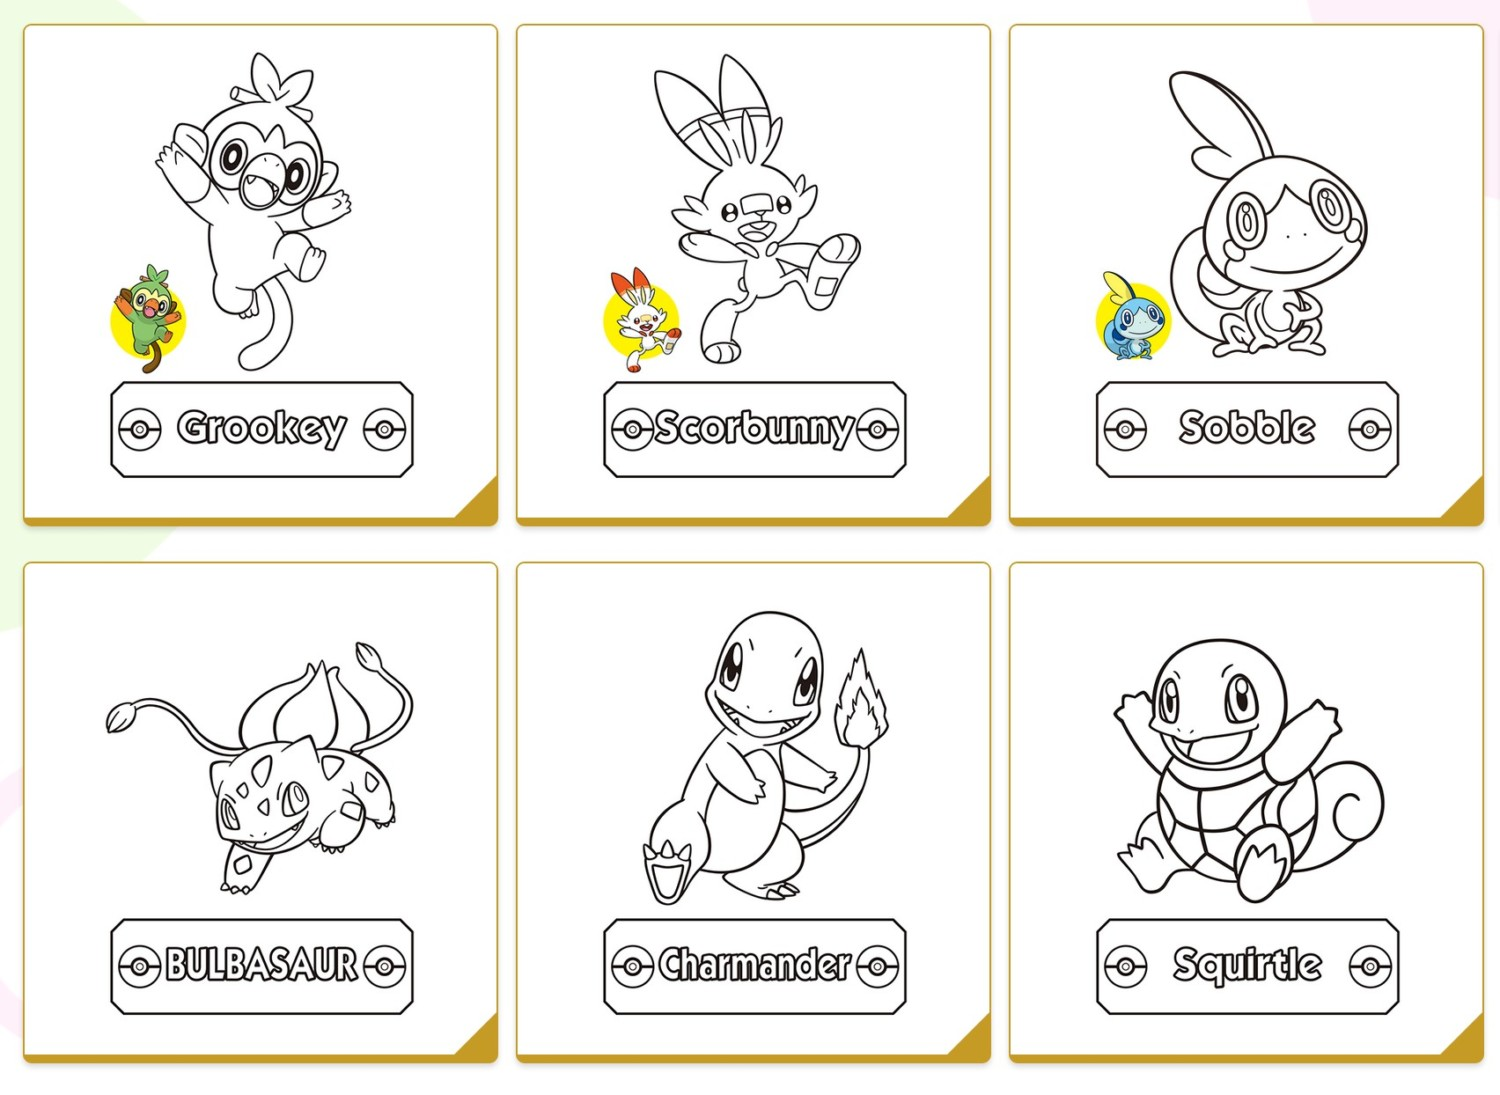 Download Free Pokemon Coloring Pages From The Pokemon Company Nintendosoup